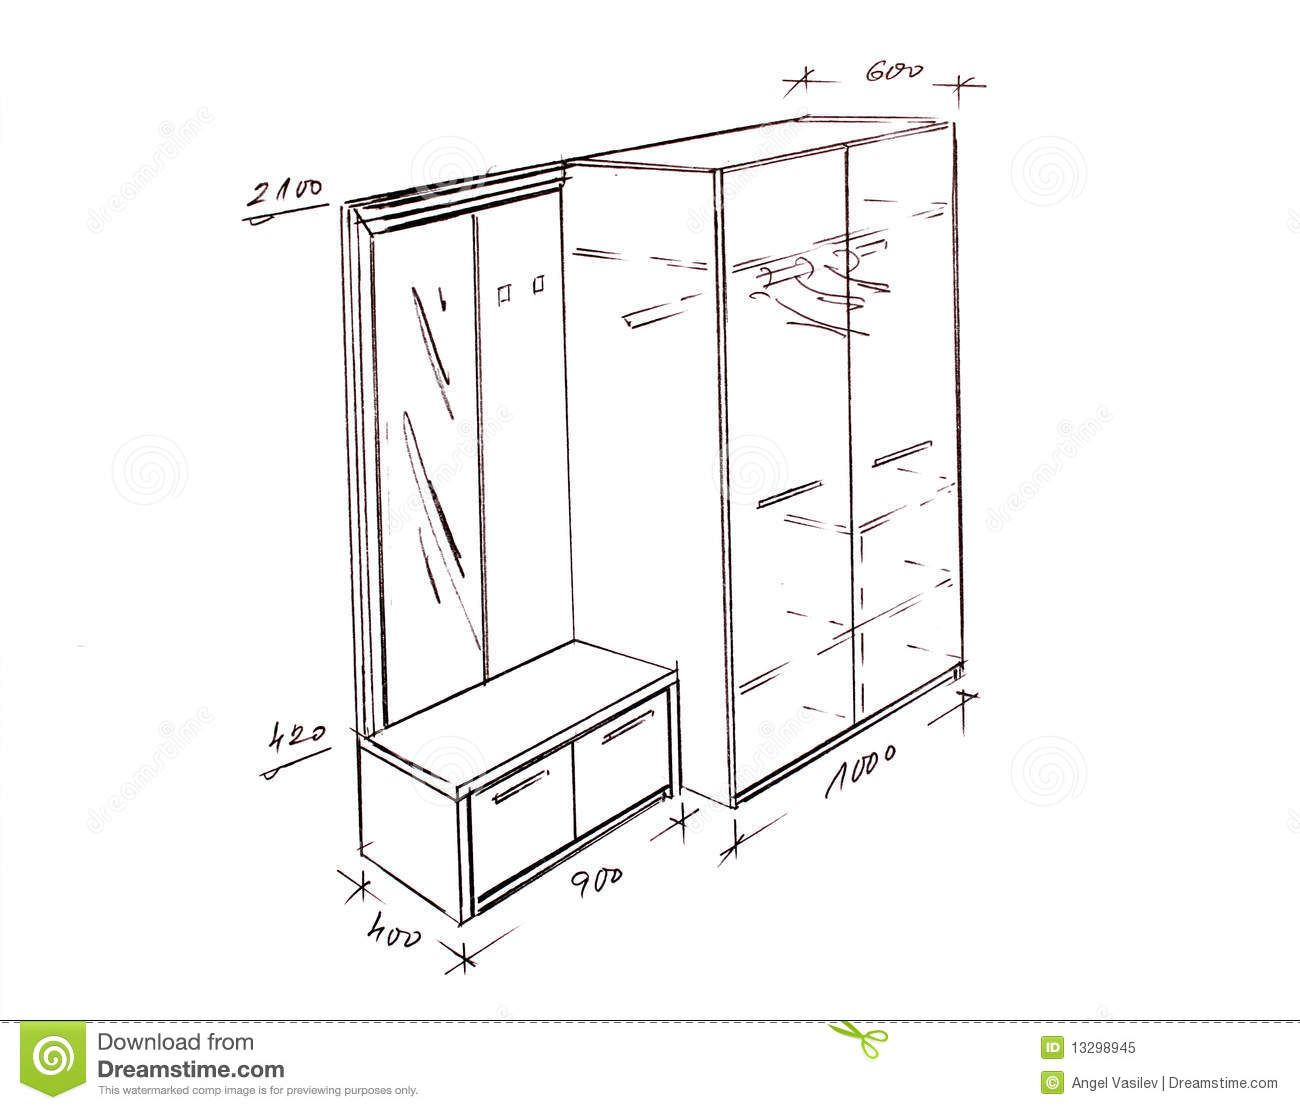 Furniture design drawings furniture design drawings for Drawing room furniture design